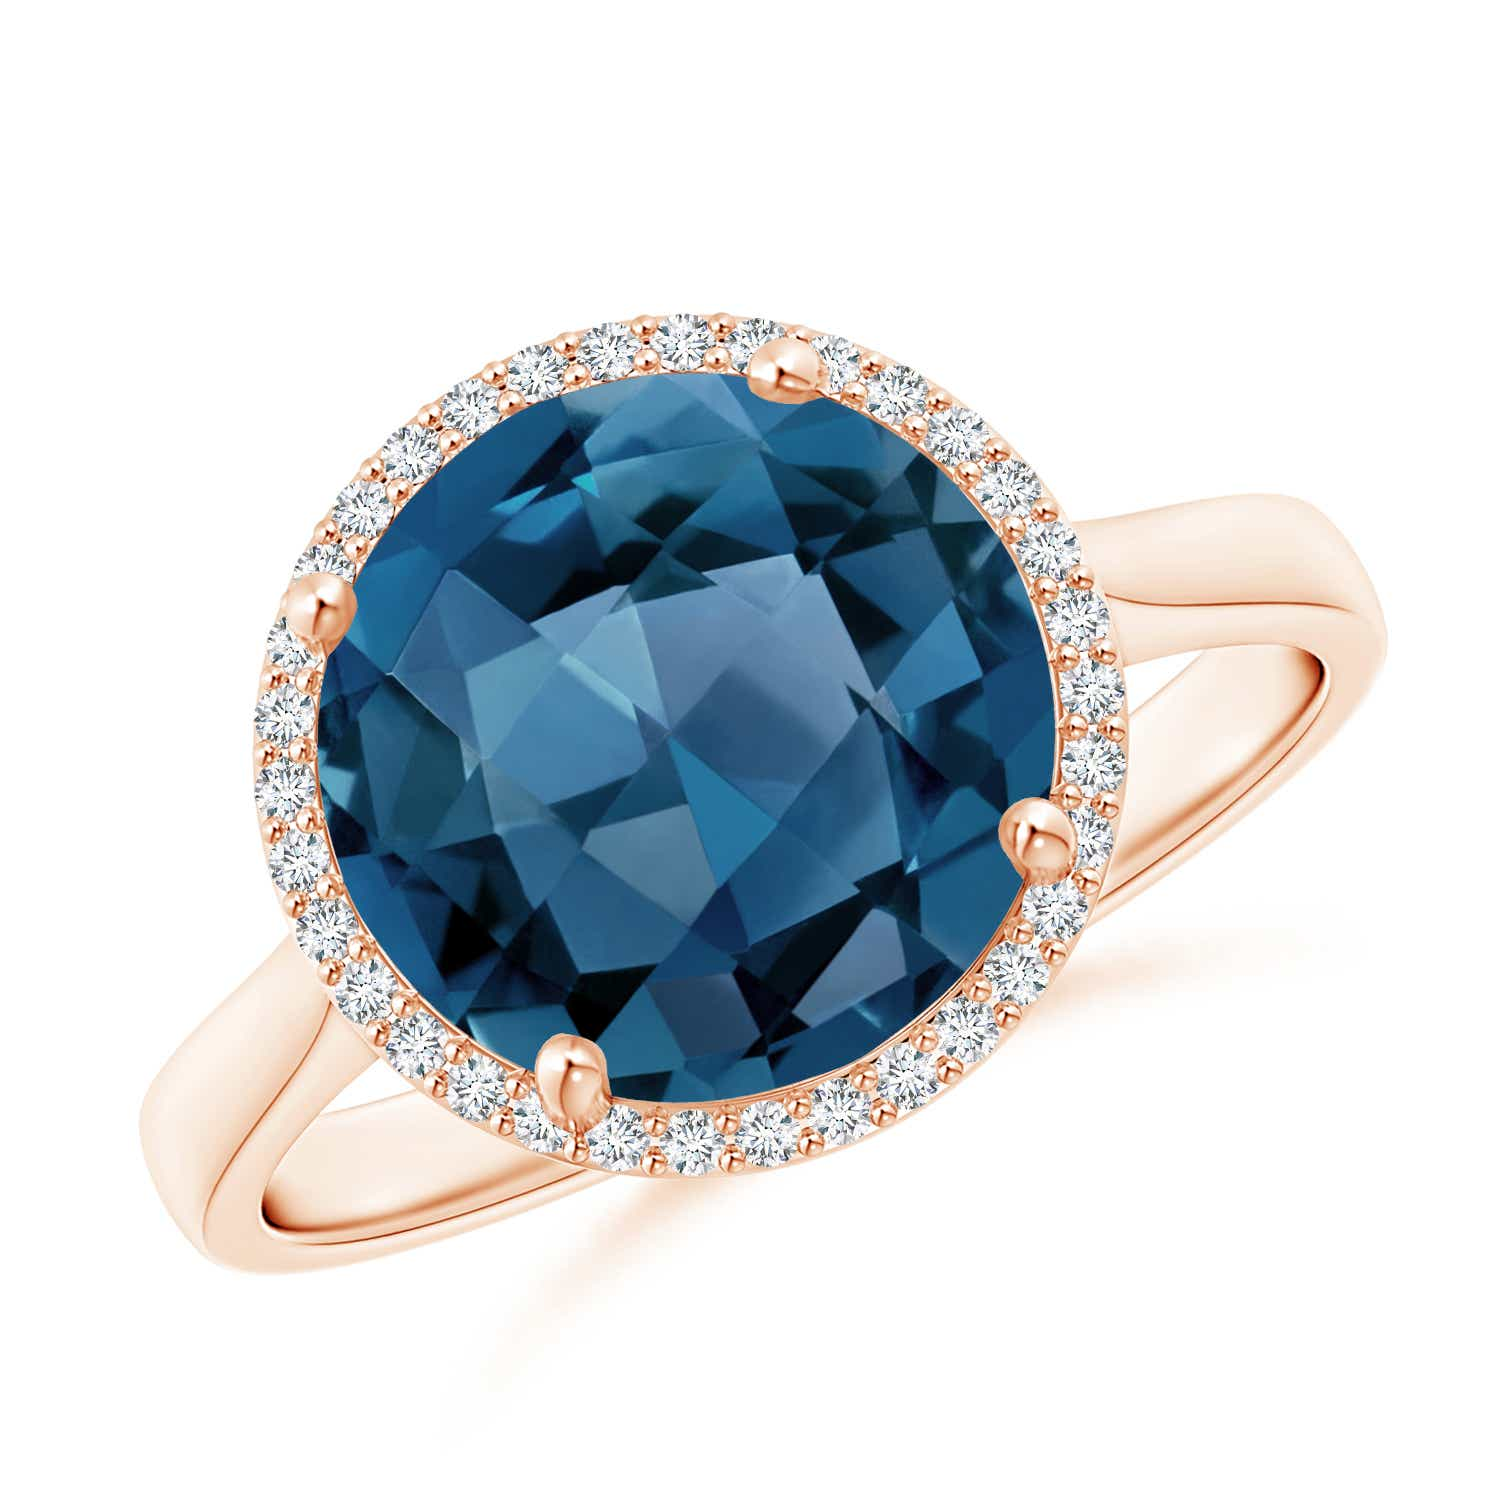 Angara Cocktail Ring with Natural London Blue Topaz in White Gold JmHX7Qn